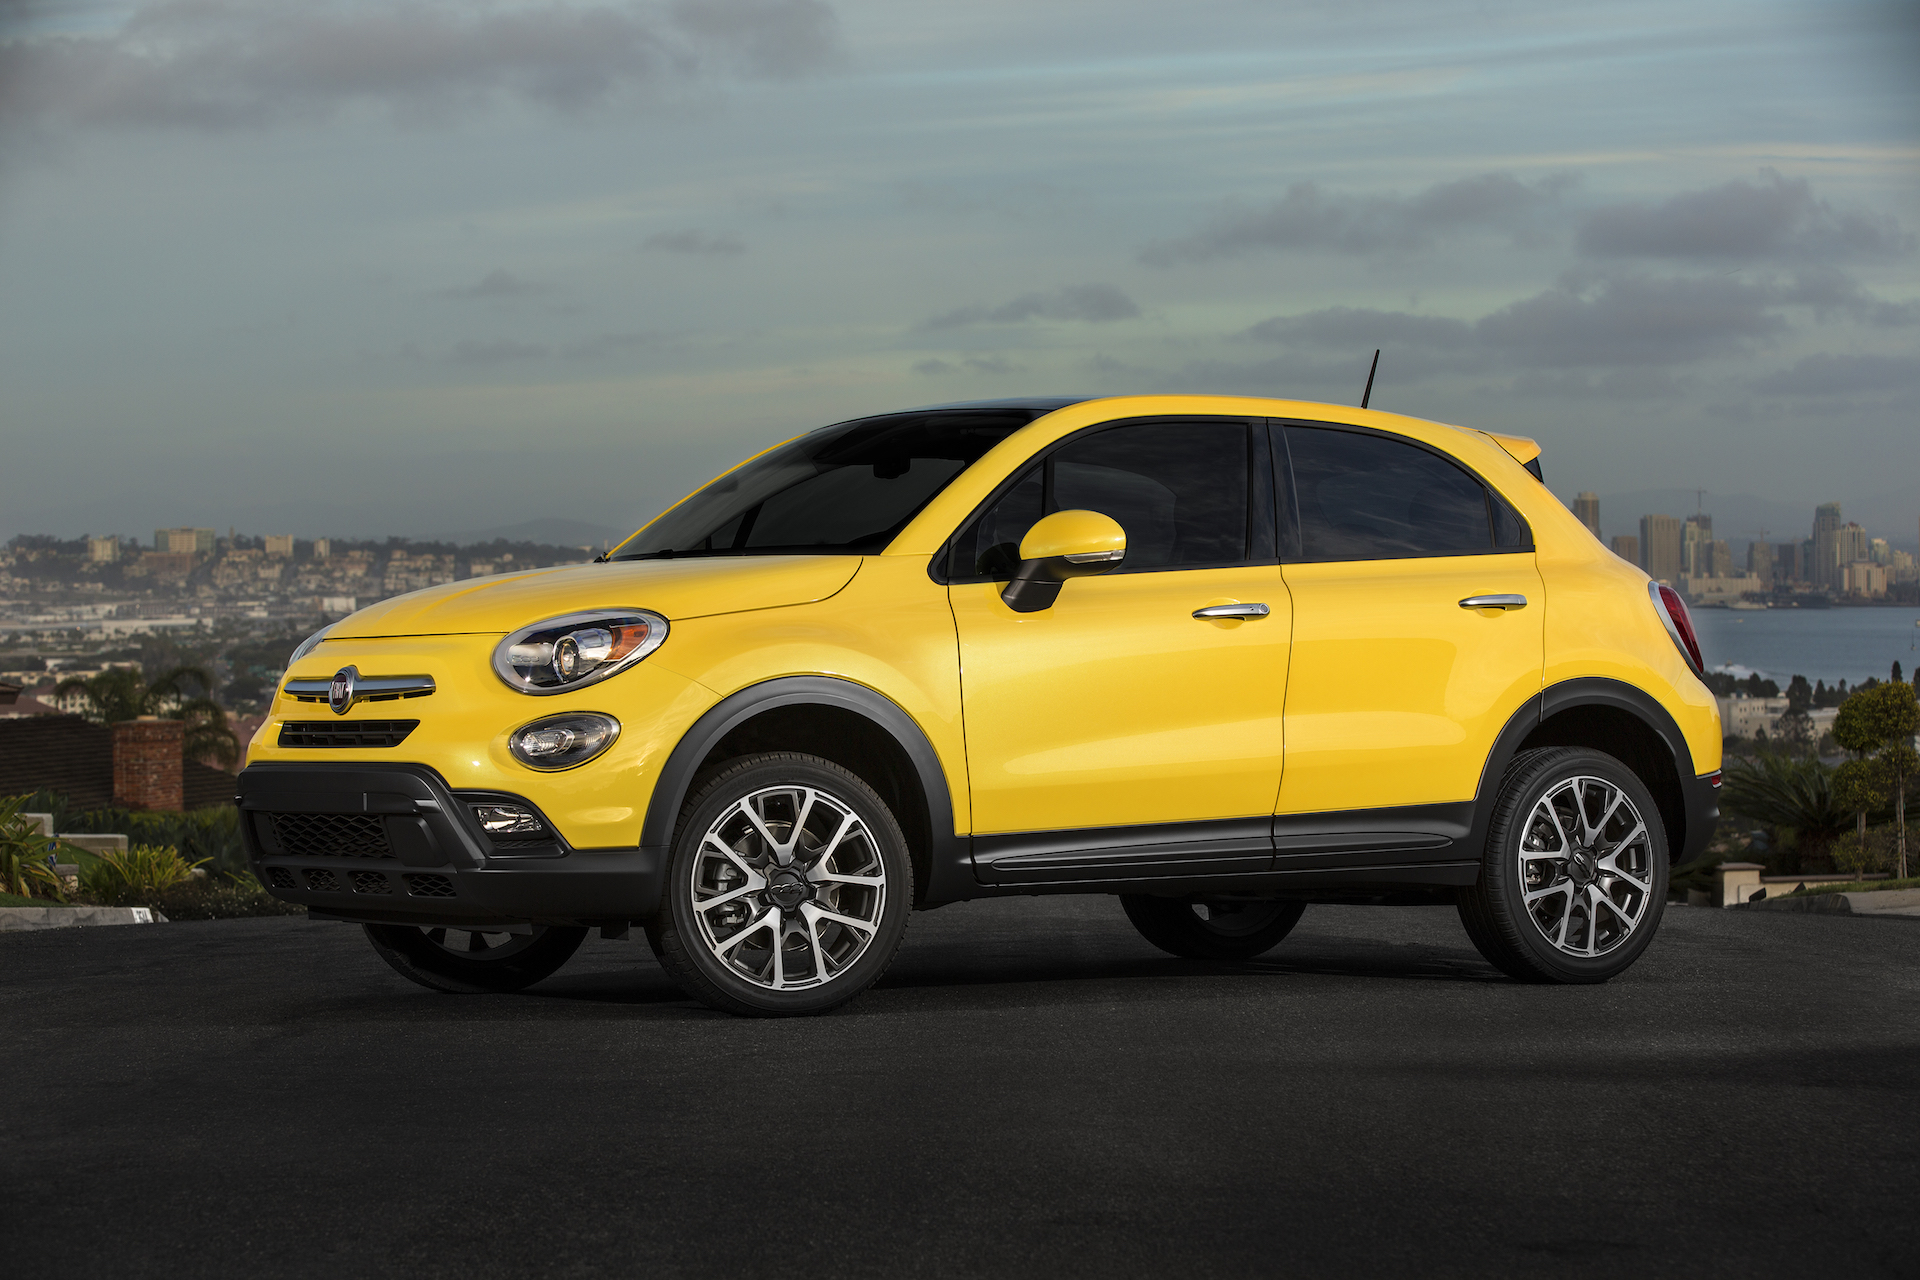 Colorado Springs Dodge >> 2016 FIAT 500X Review, Ratings, Specs, Prices, and Photos - The Car Connection